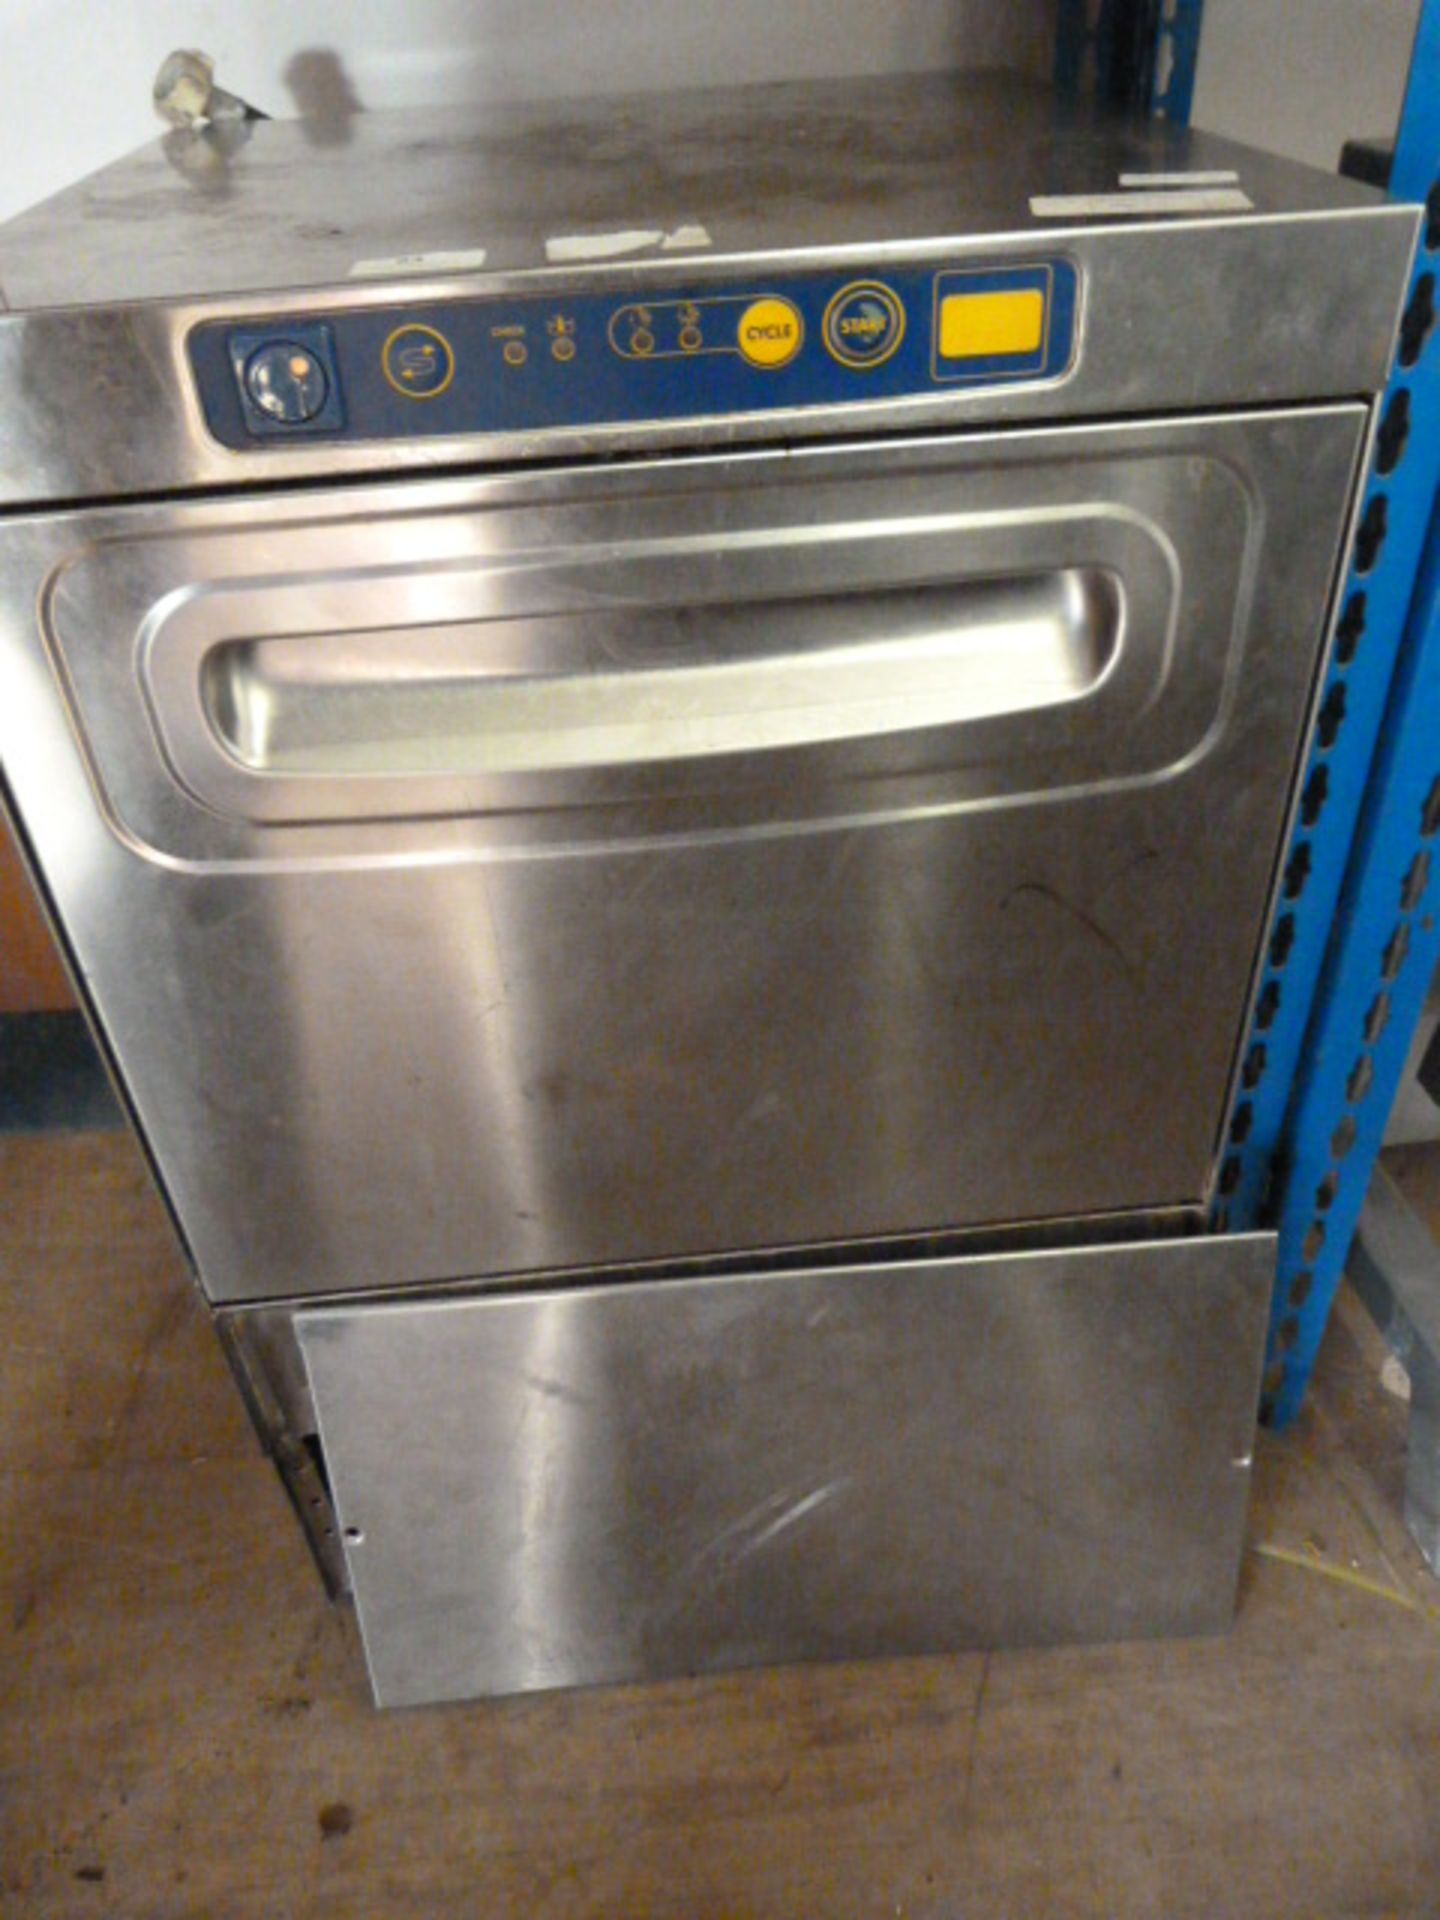 Lot 84 - Commercial Undercounter Glass Washer